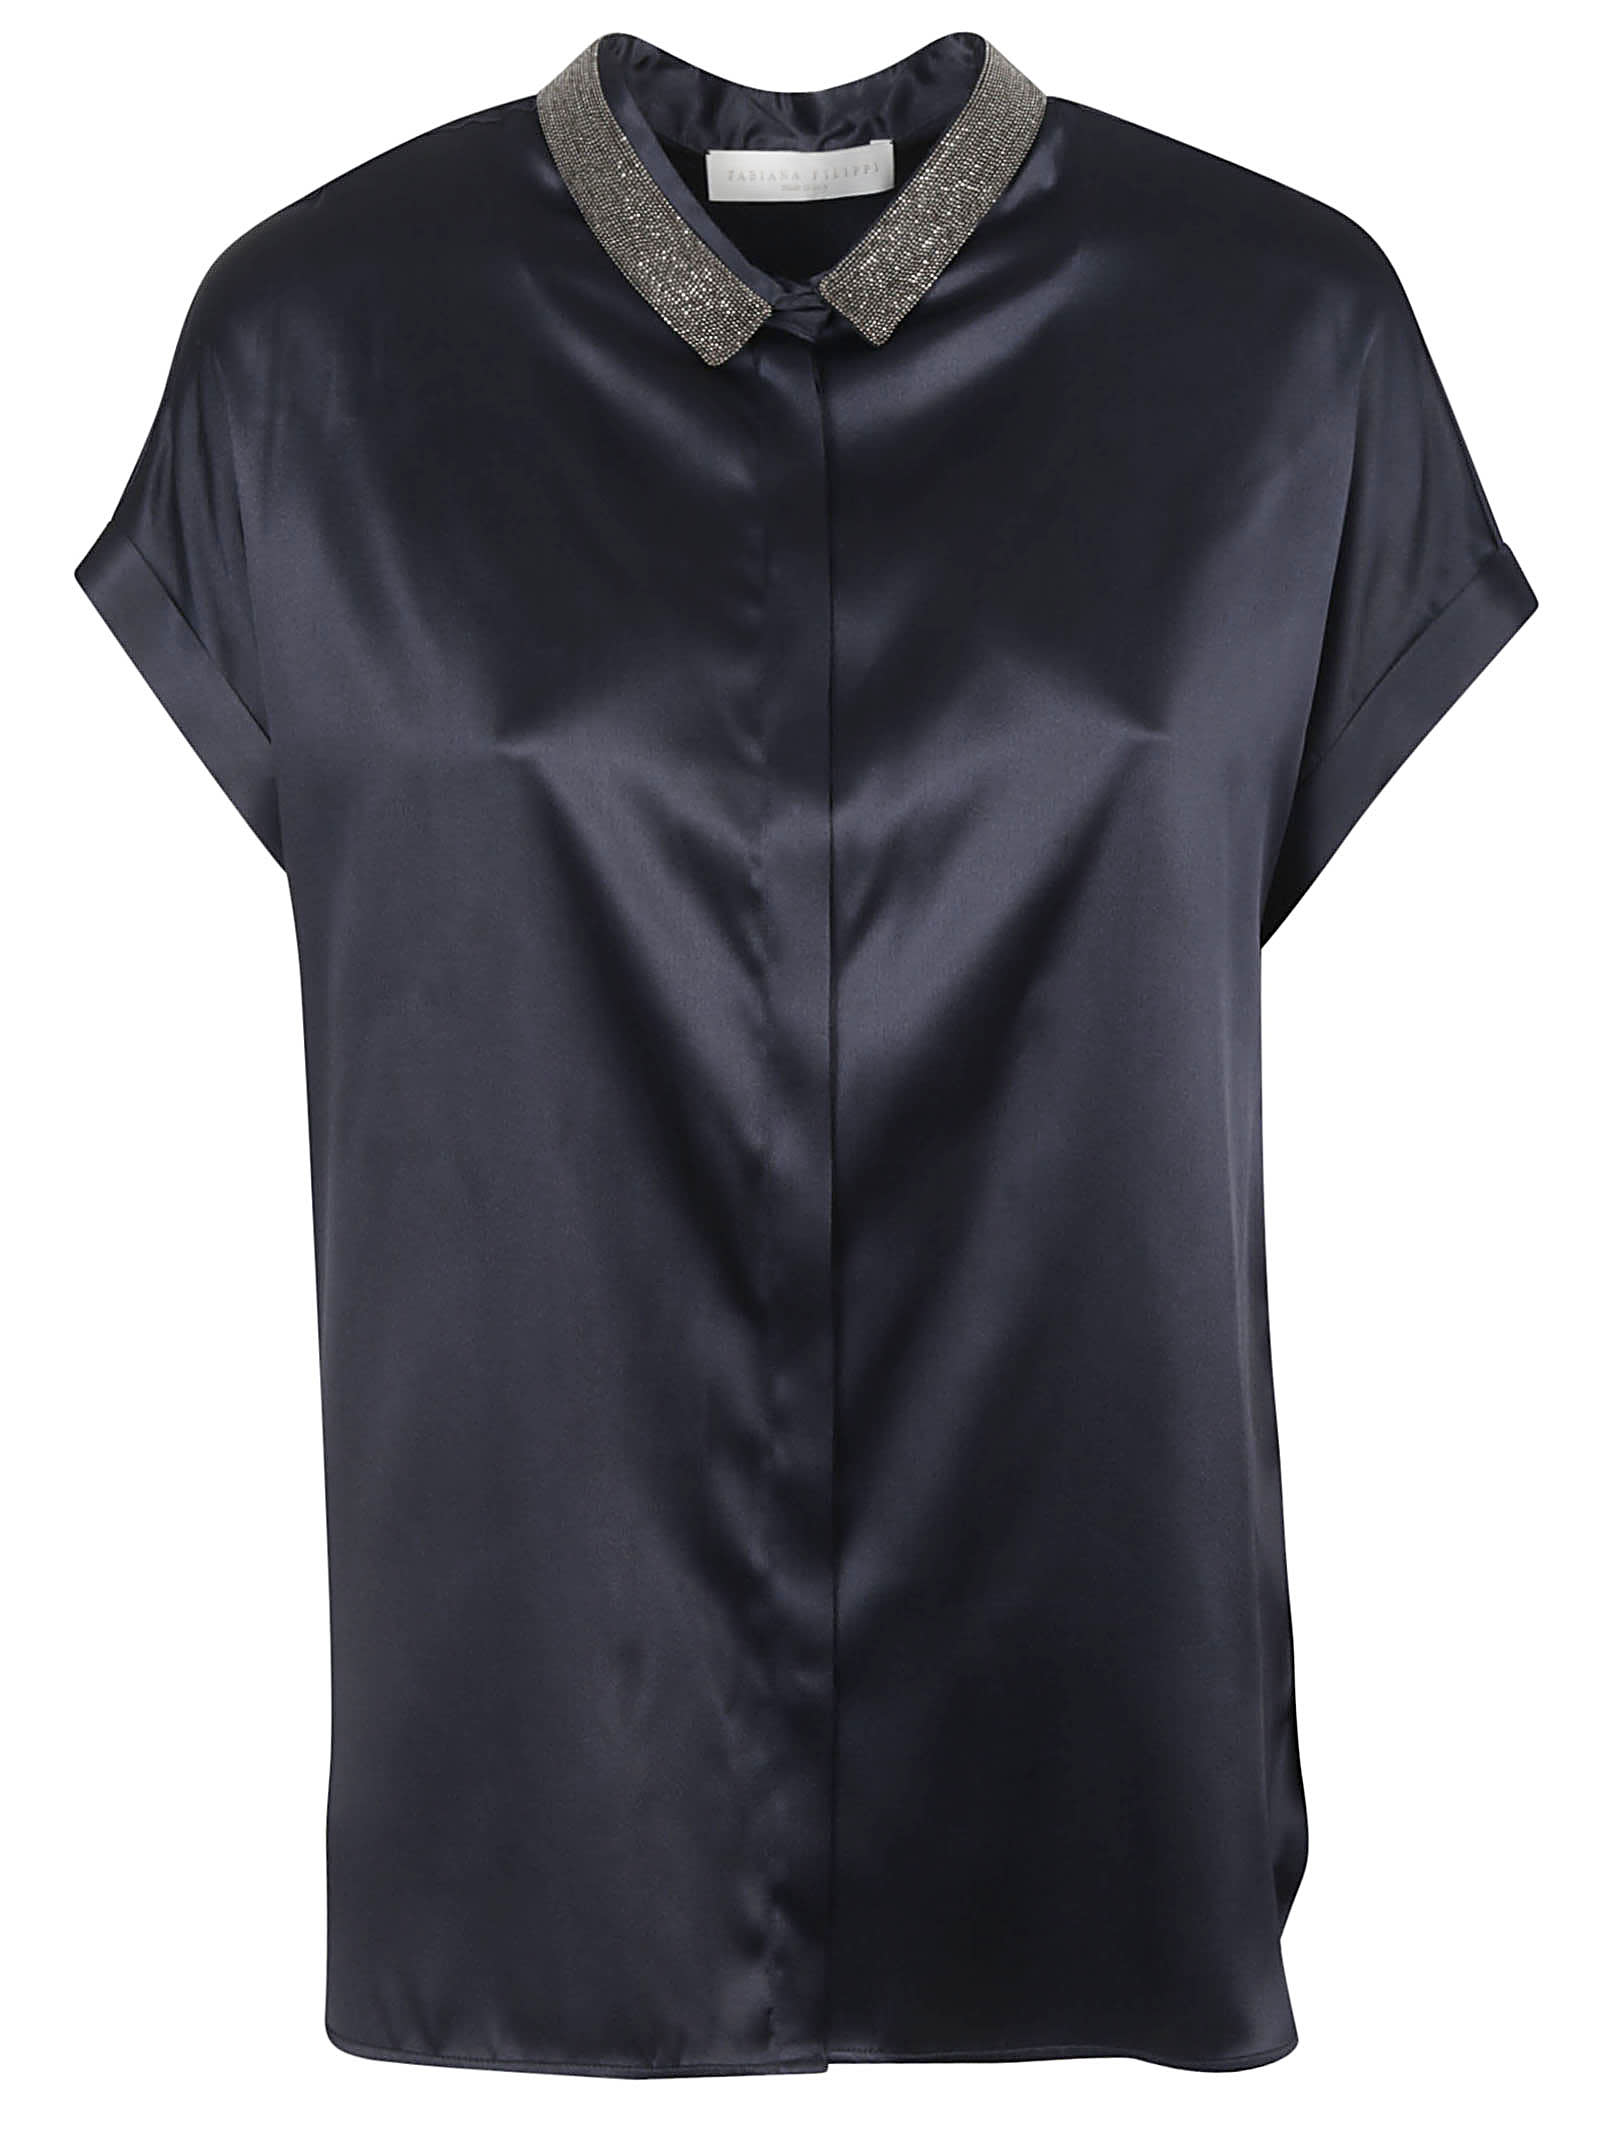 Fabiana Filippi EMBELLISHED COLLAR SHIRT